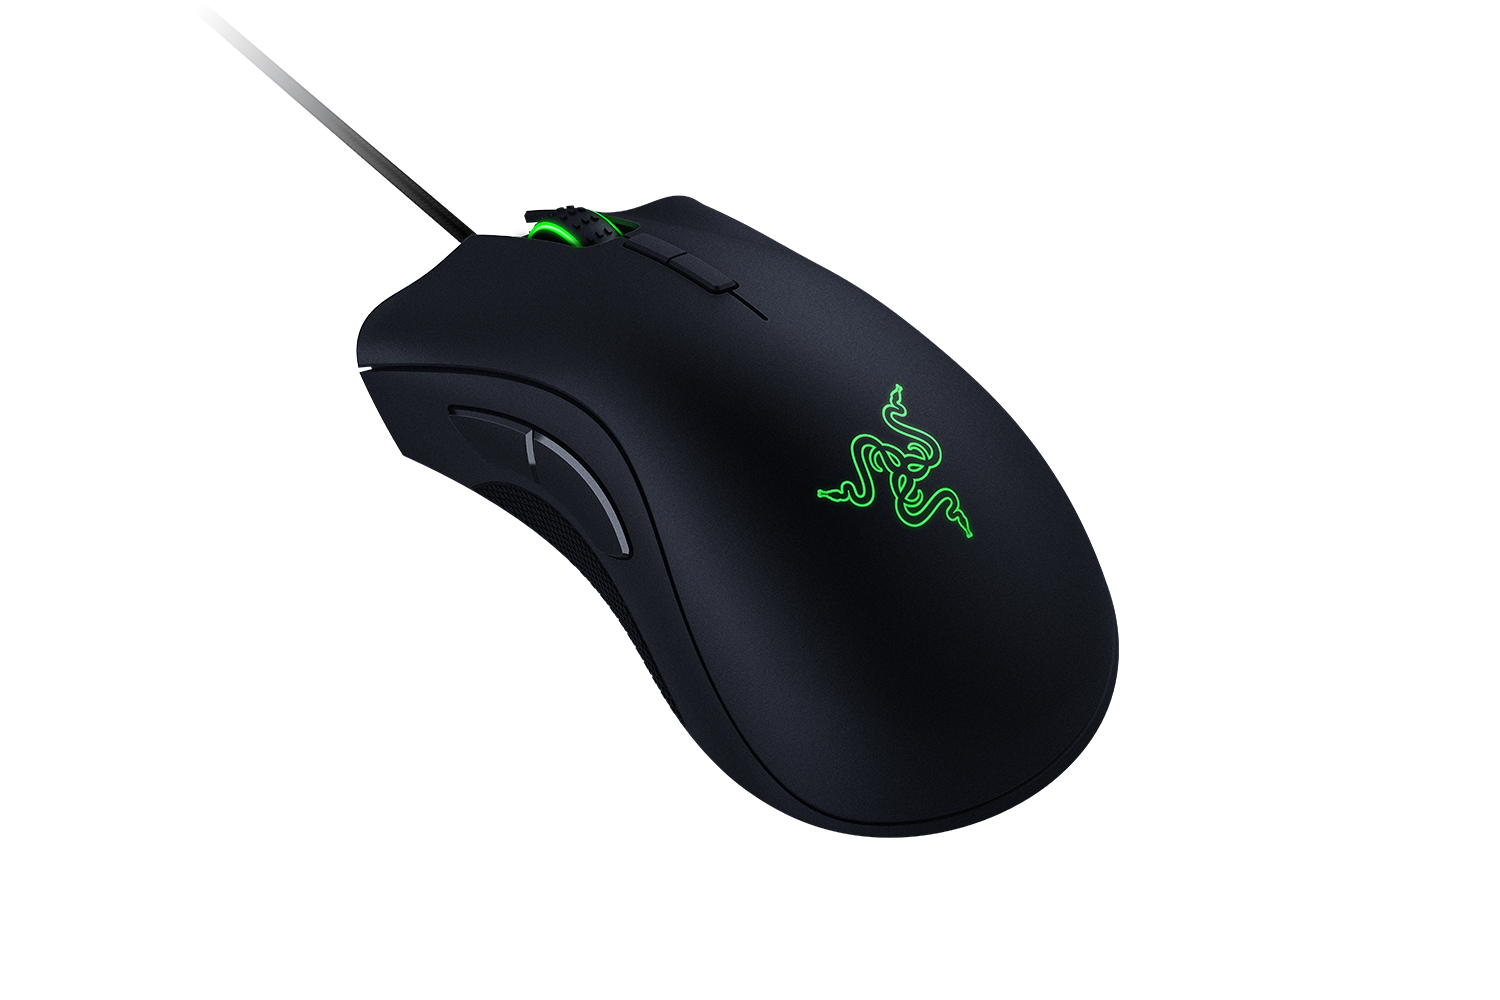 RFMag Holiday Gift Guide 2016: Razer DeathAdder Elite Gaming Mouse